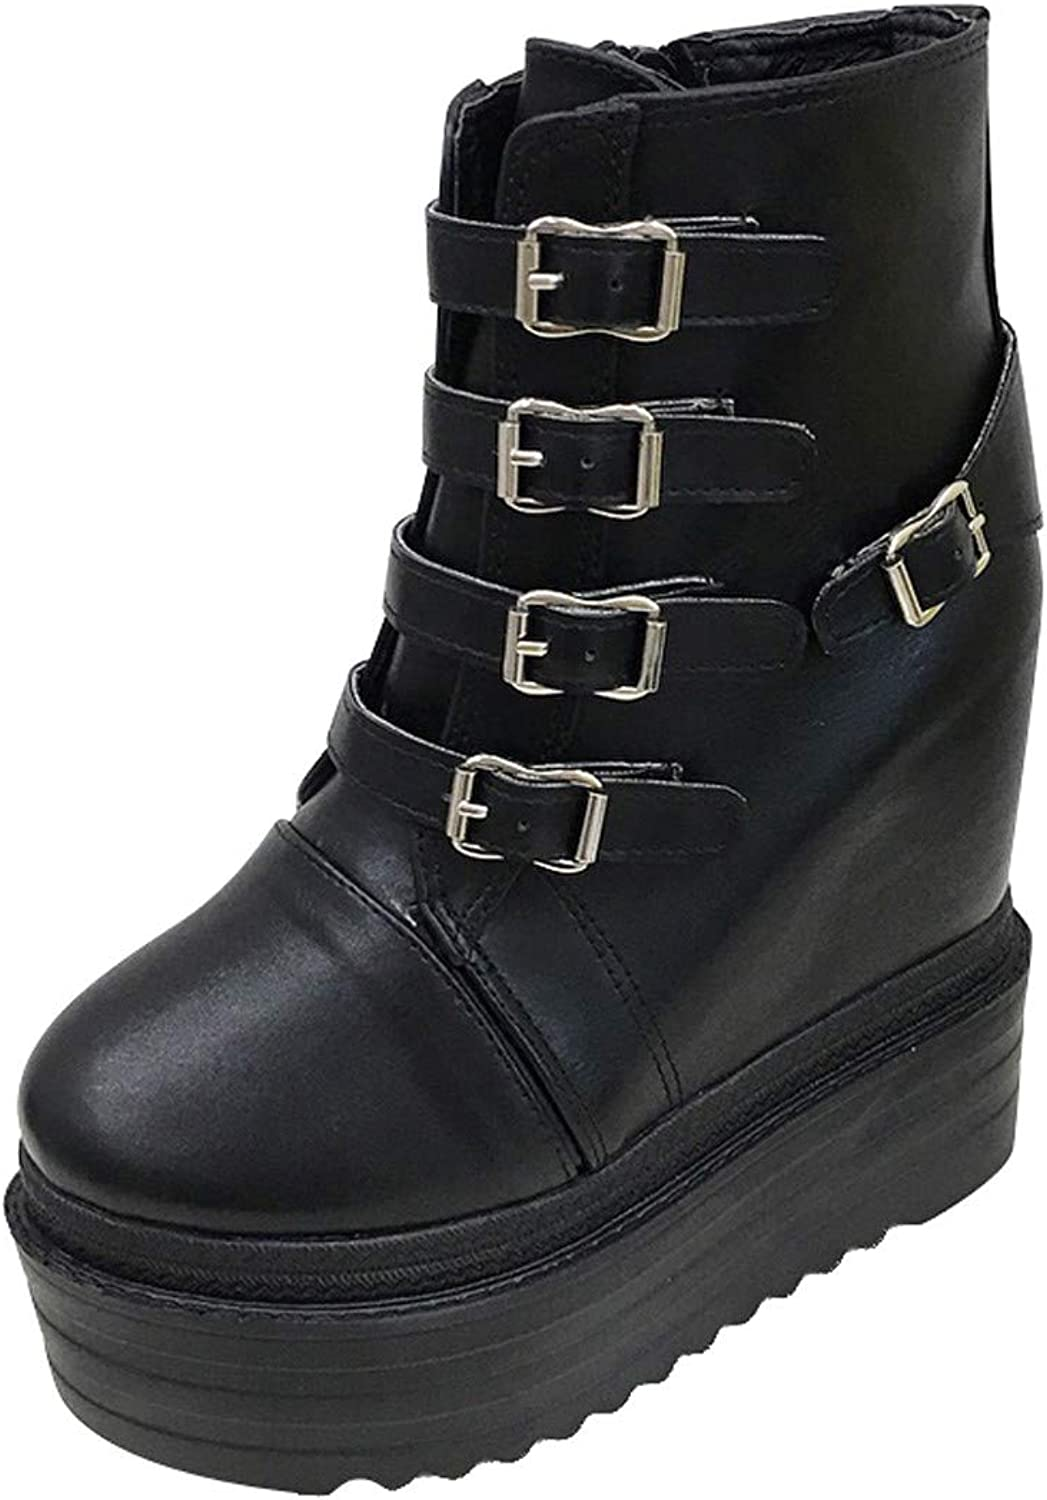 GTVERNH Women's shoes 14Cm Super High Heel Slope Heel shoes Waterproof Platform Muffin Thick Sole Martin Boots Night Club Sexy Belt Buckle Fleece shoes for Women